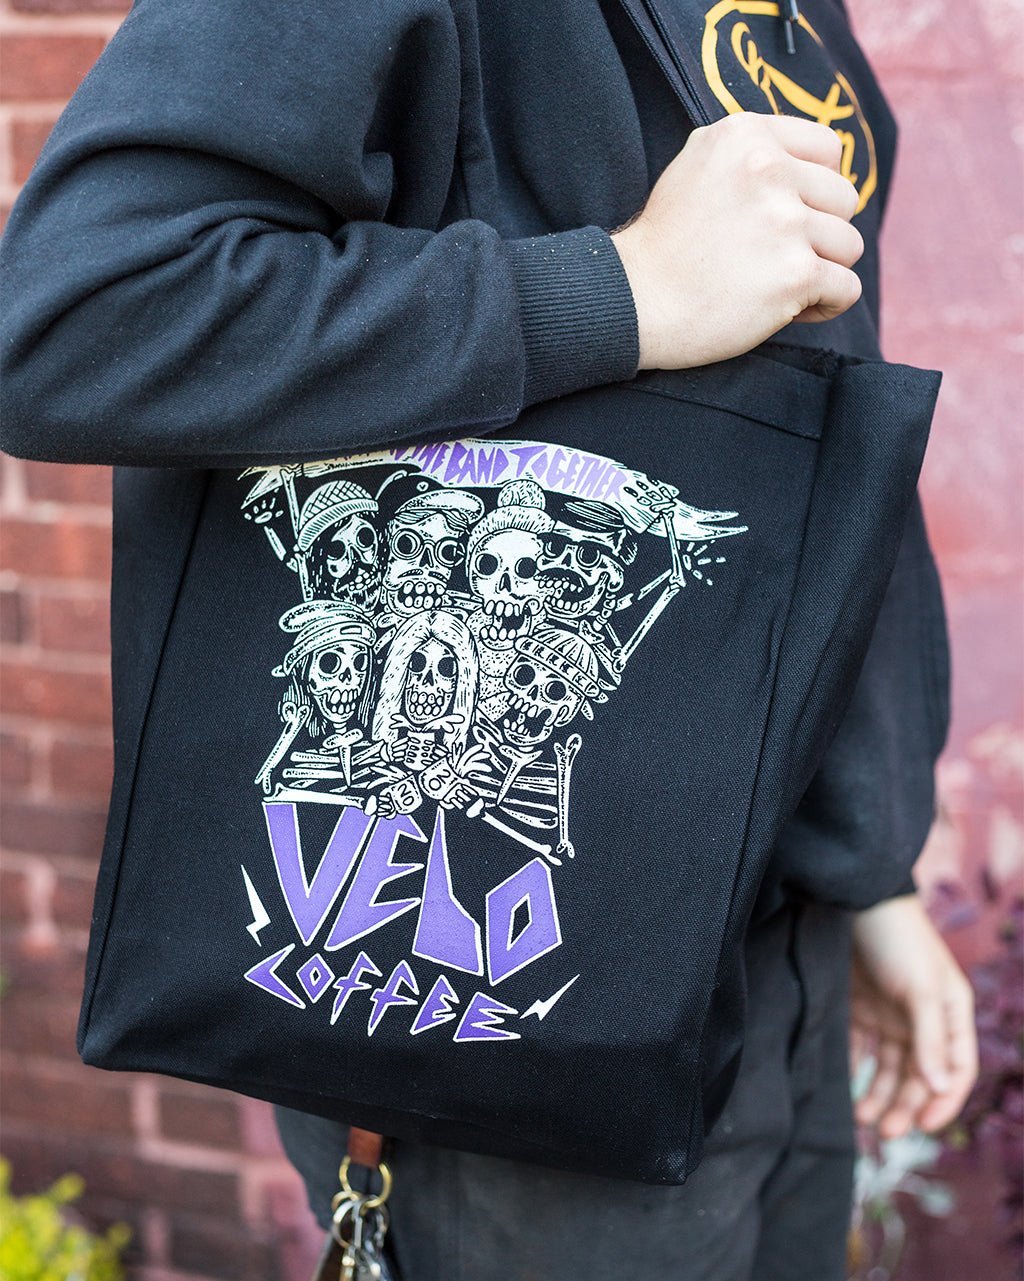 Keeping the Band Together Tote Bag - Limited Stock